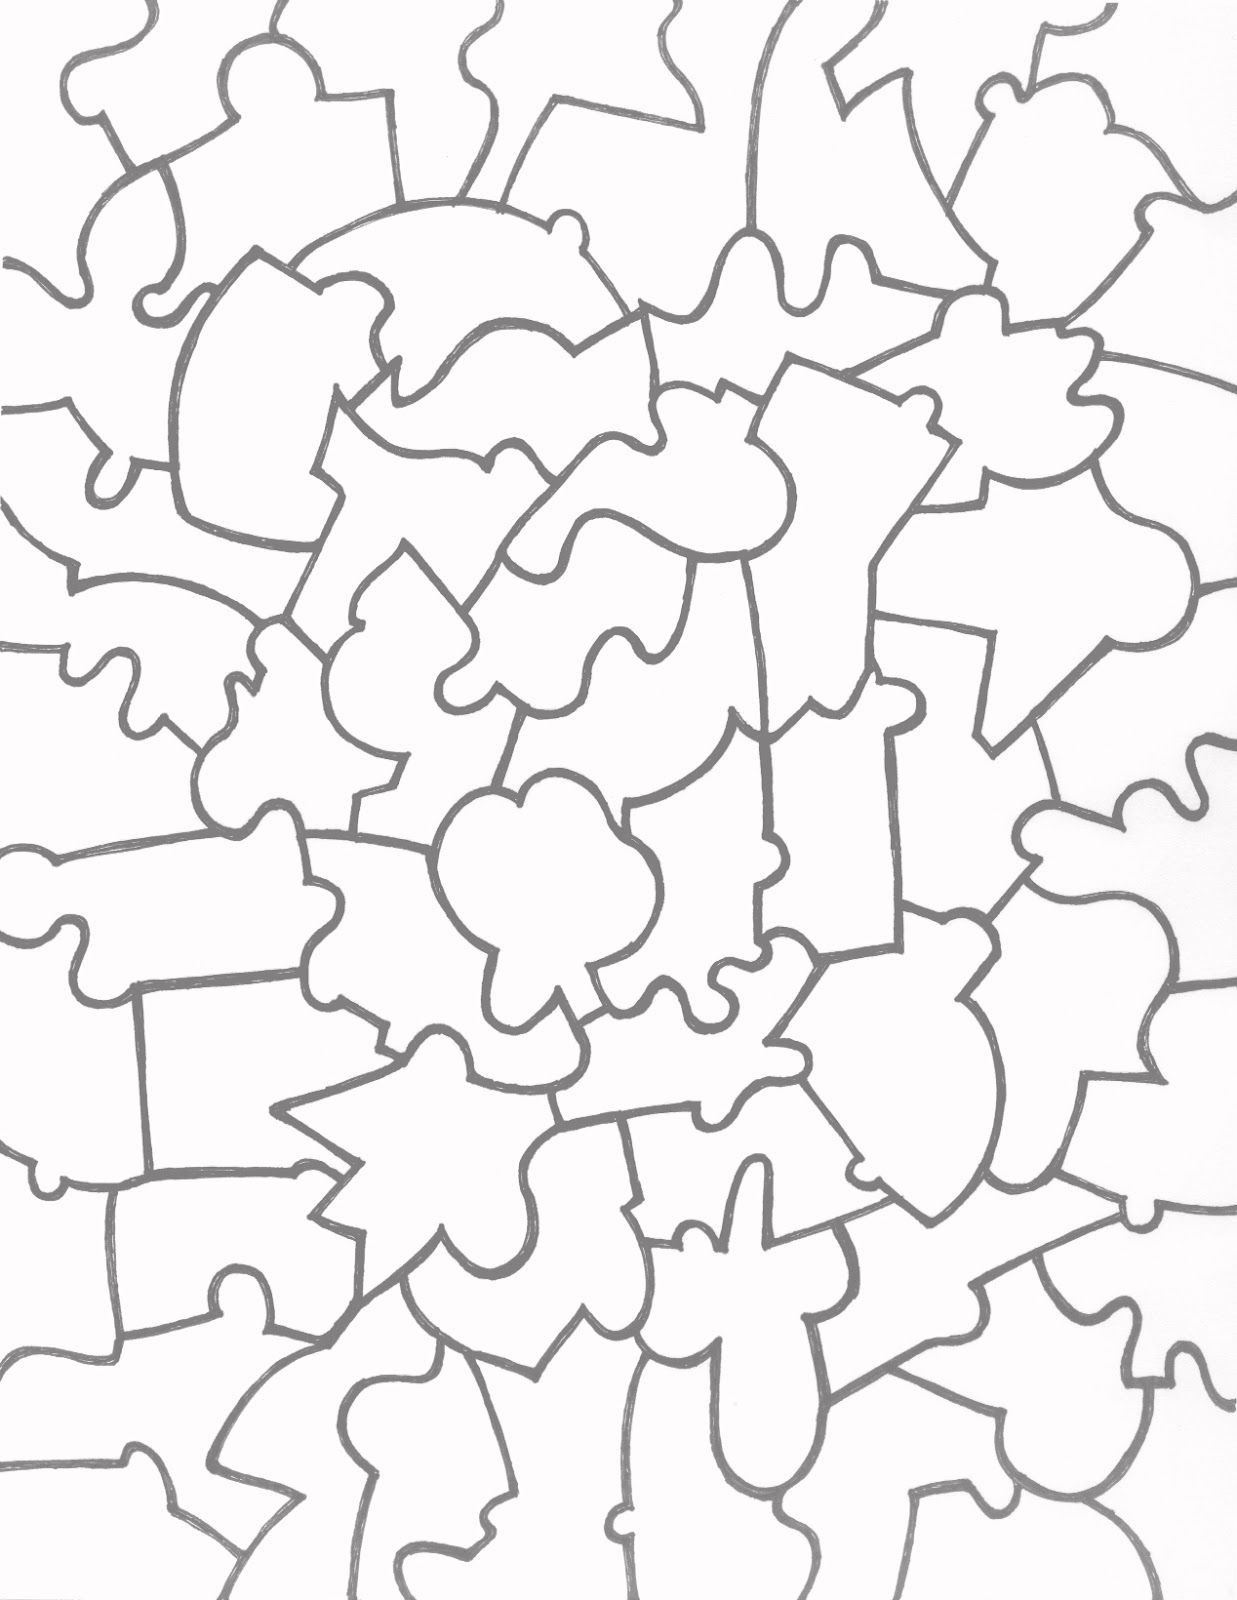 Jigsaw+Puzzle+Template+Printable   Vector   Free Printable Puzzles - Printable Puzzle Jigsaw